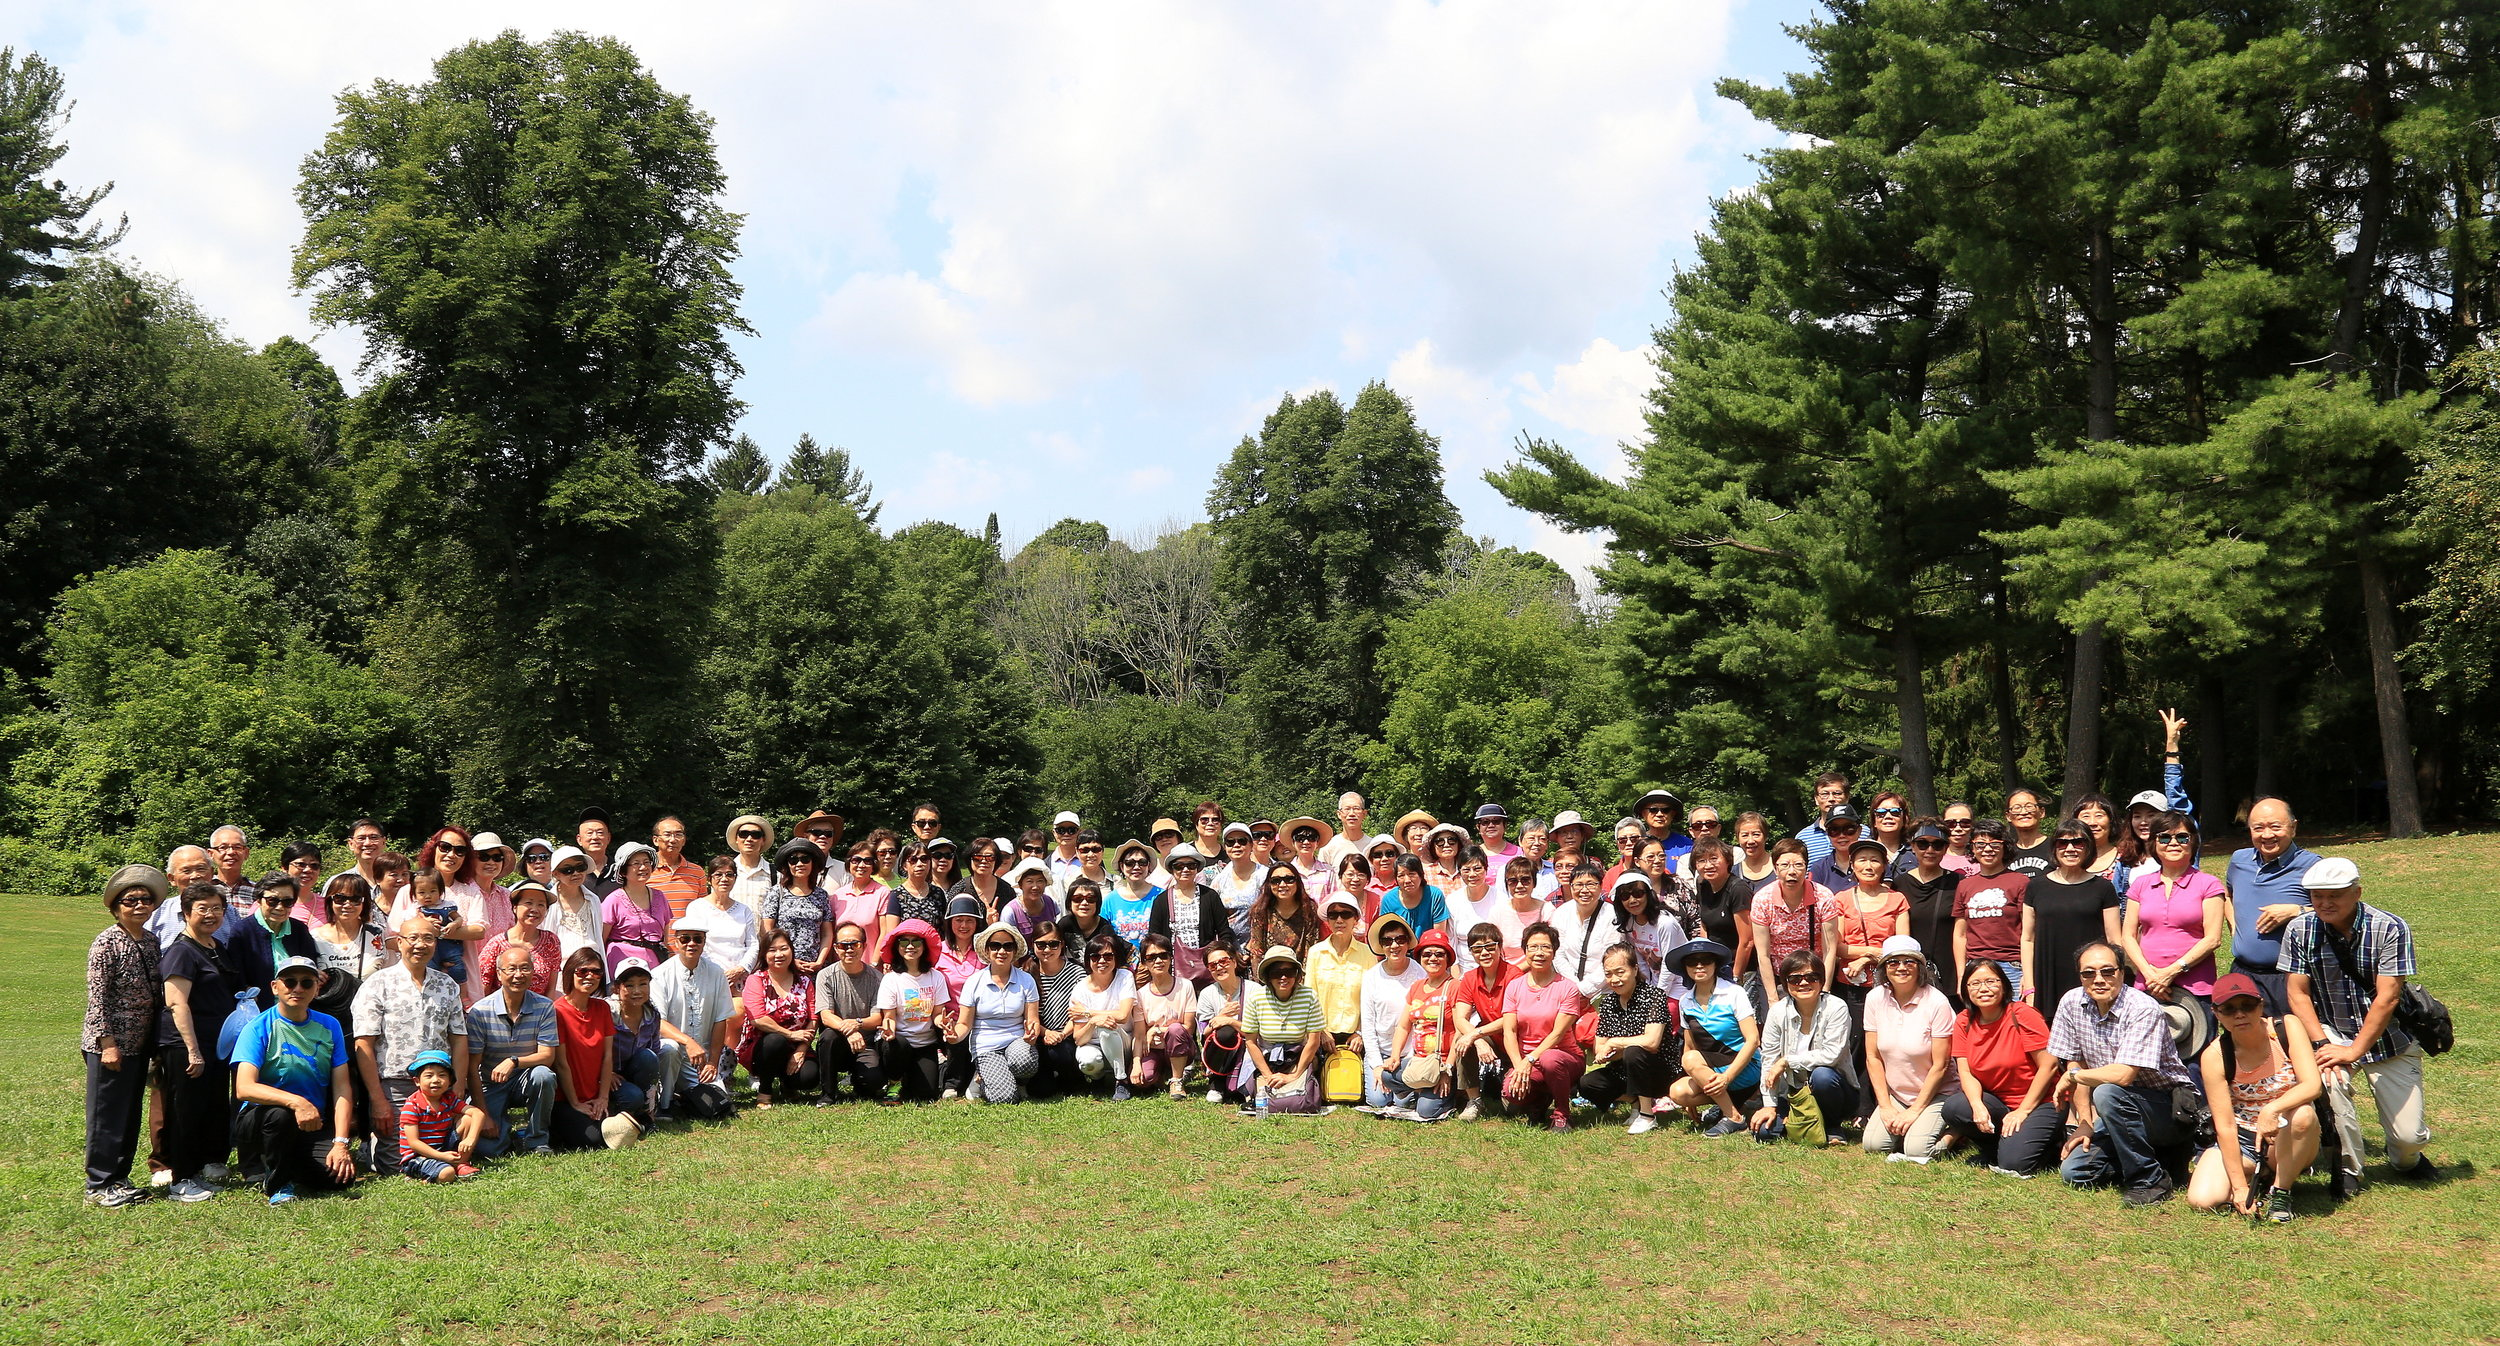 SGundyPark-Group photo-2018.08.09.JPG